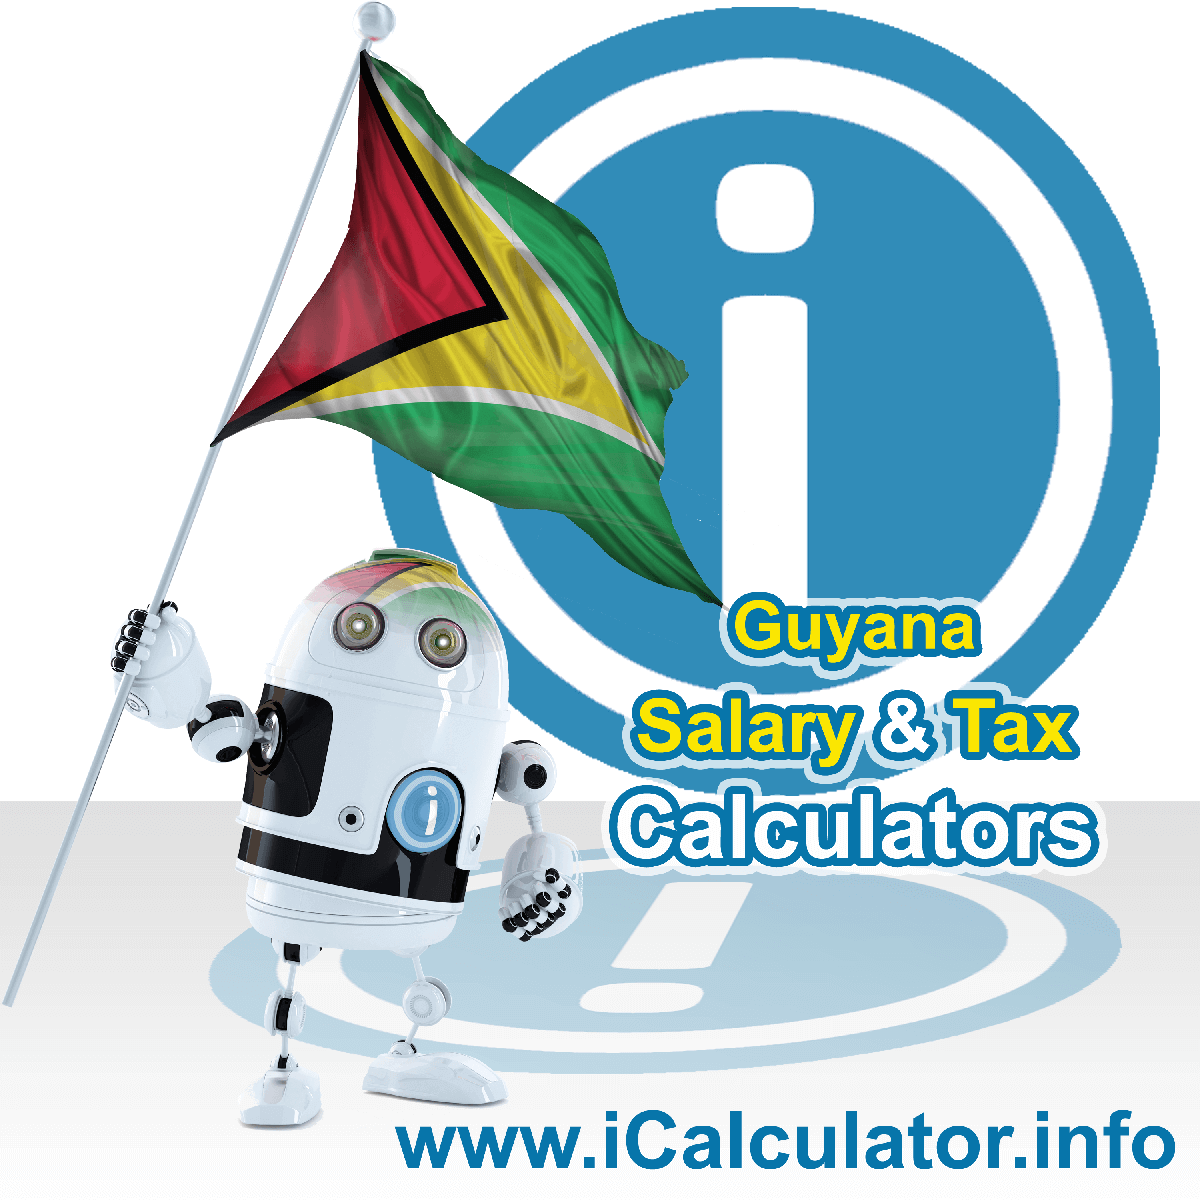 Guyana Wage Calculator. This image shows the Guyana flag and information relating to the tax formula for the Guyana Tax Calculator